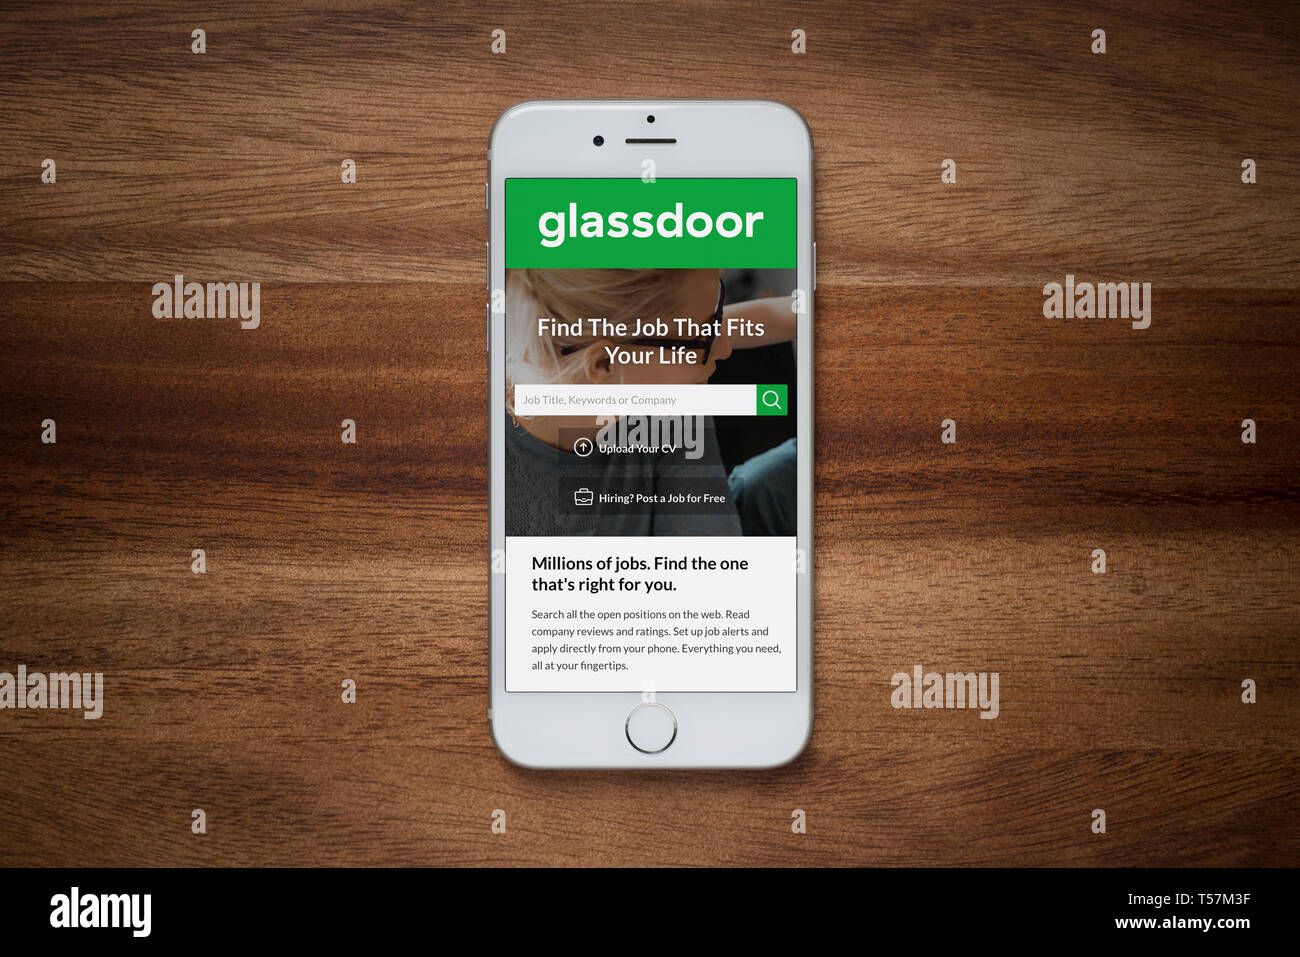 An iPhone showing the Glassdoor website rests on a plain wooden table (Editorial use only). - Stock Image